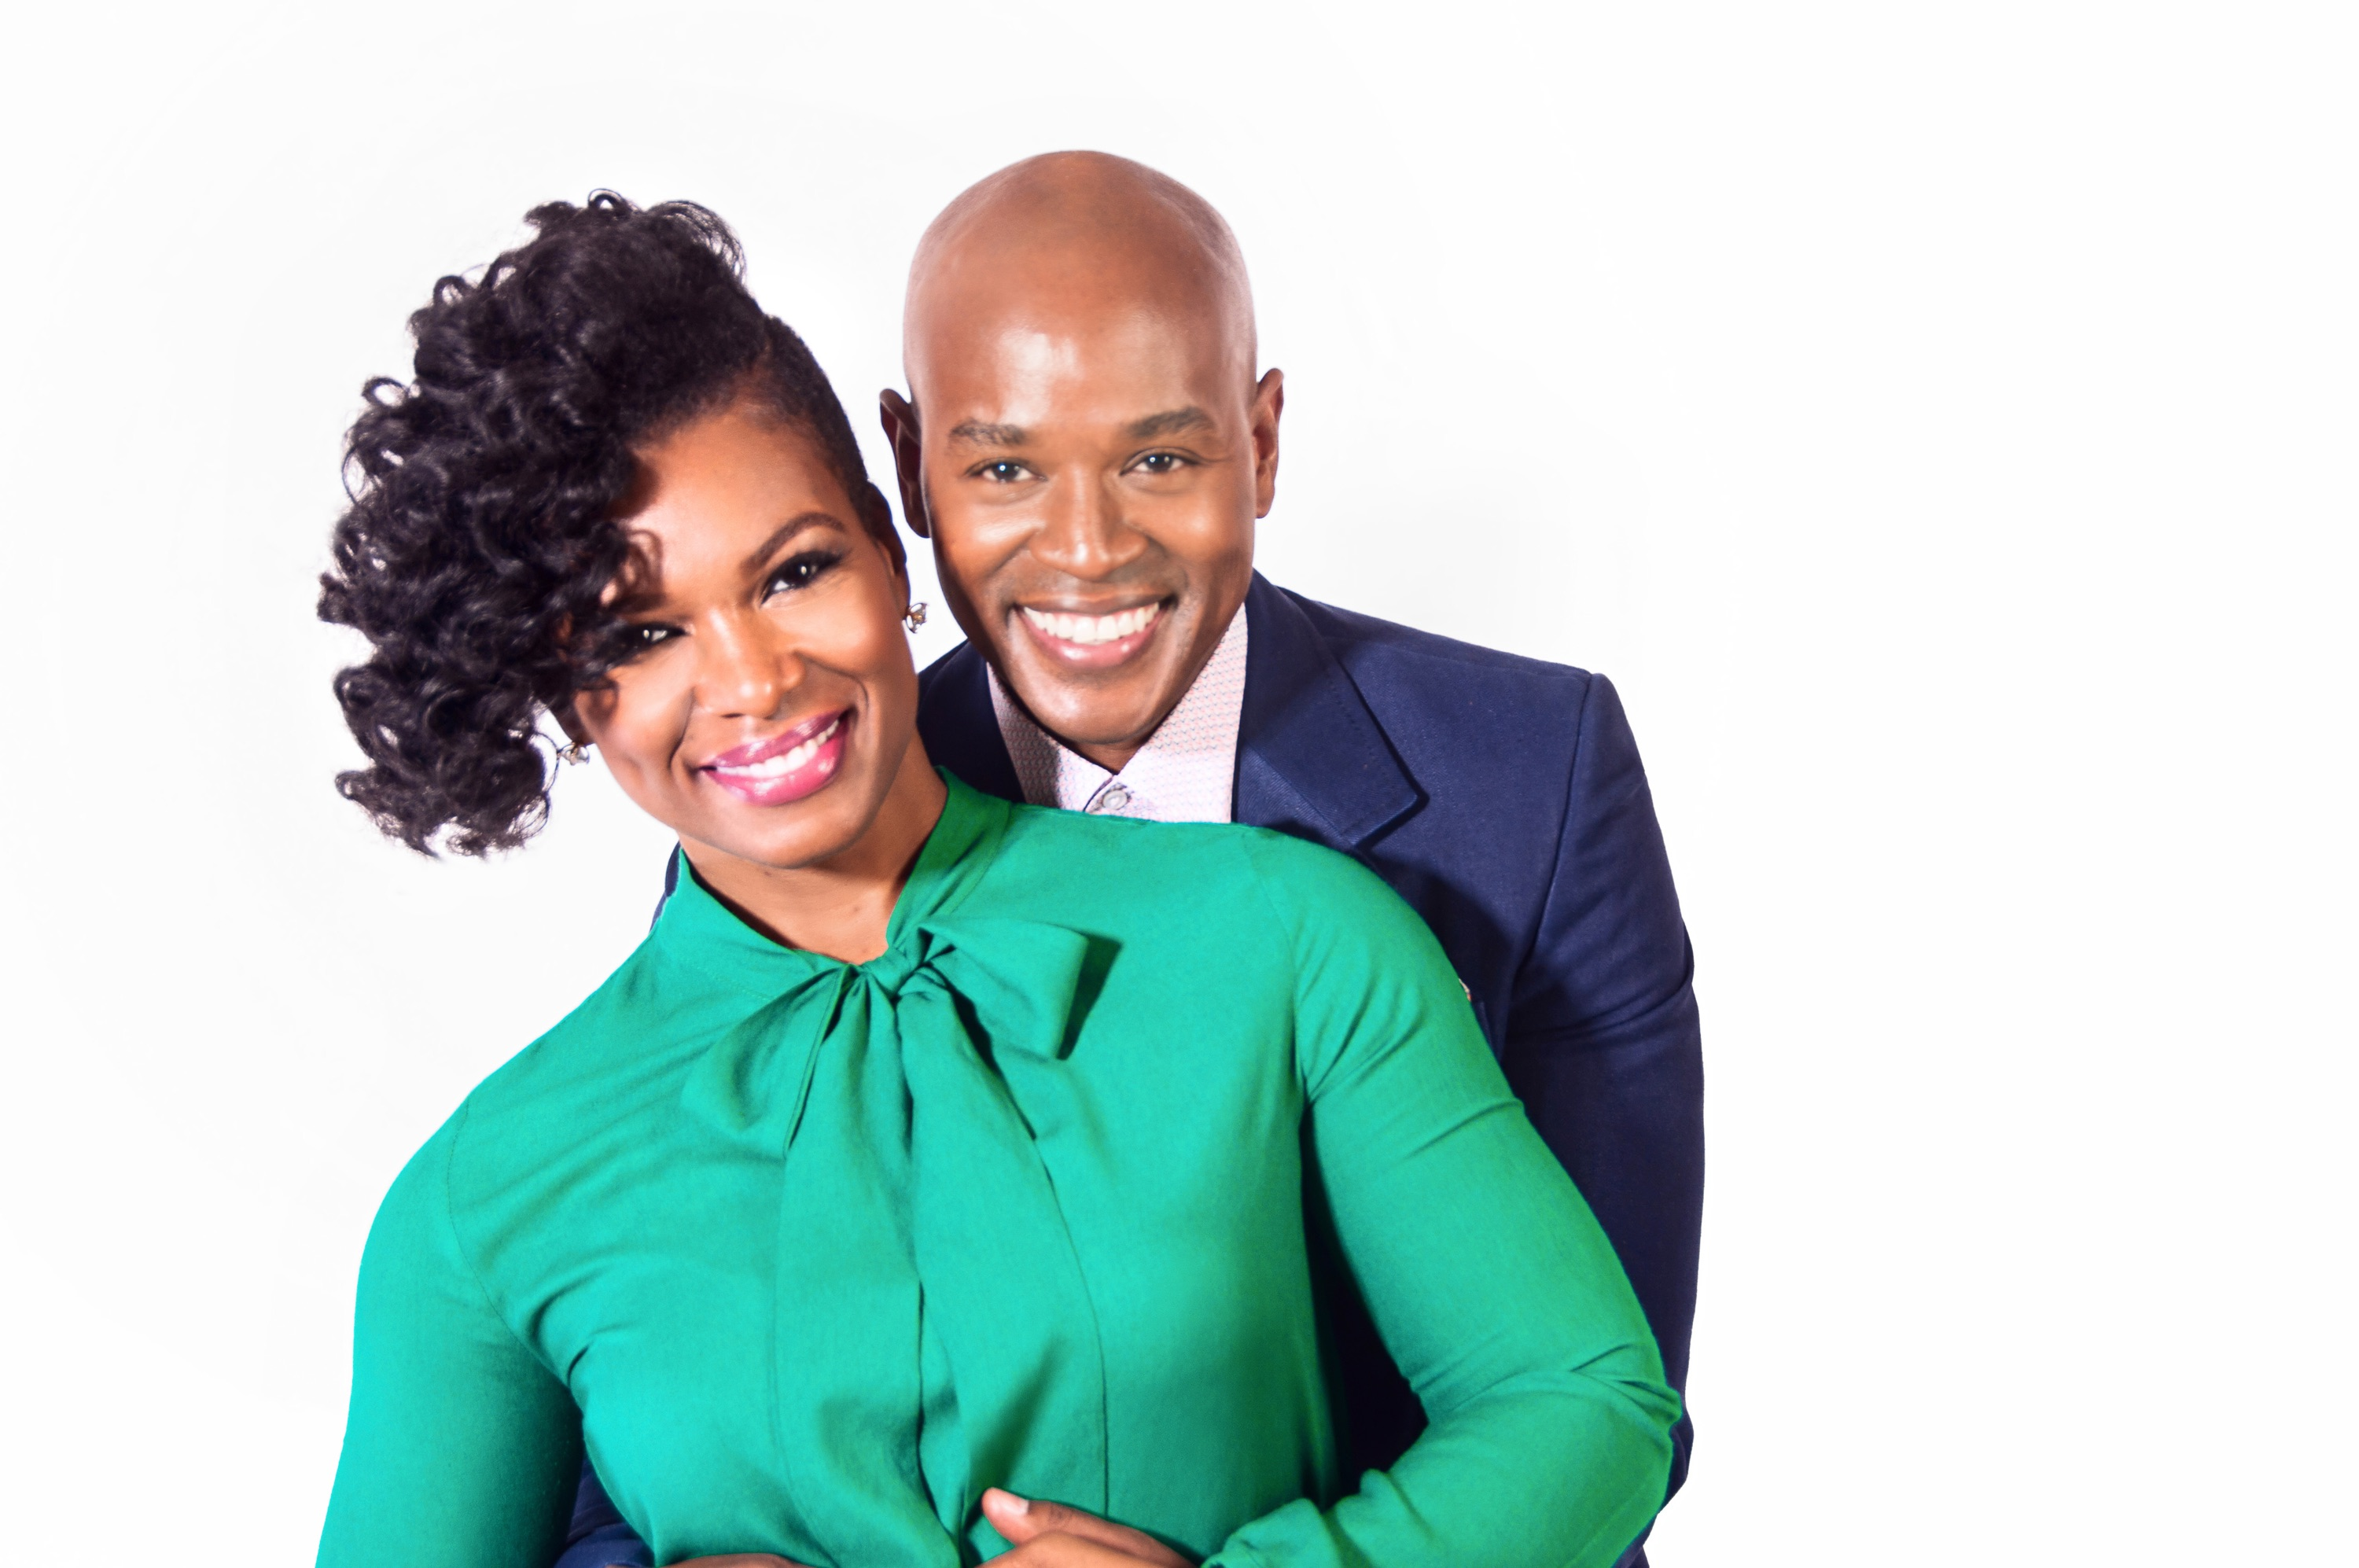 Terrance and Torsha Johnson are the husband and wife team leading Higher Dimension Church. Married for over 20 years, the pastor and first lady, along with the church's 12,000 members, promote healthy relationships through The Answer Movement, an initiative that brings together well-known couples and singles to share insights on marriage and dating.